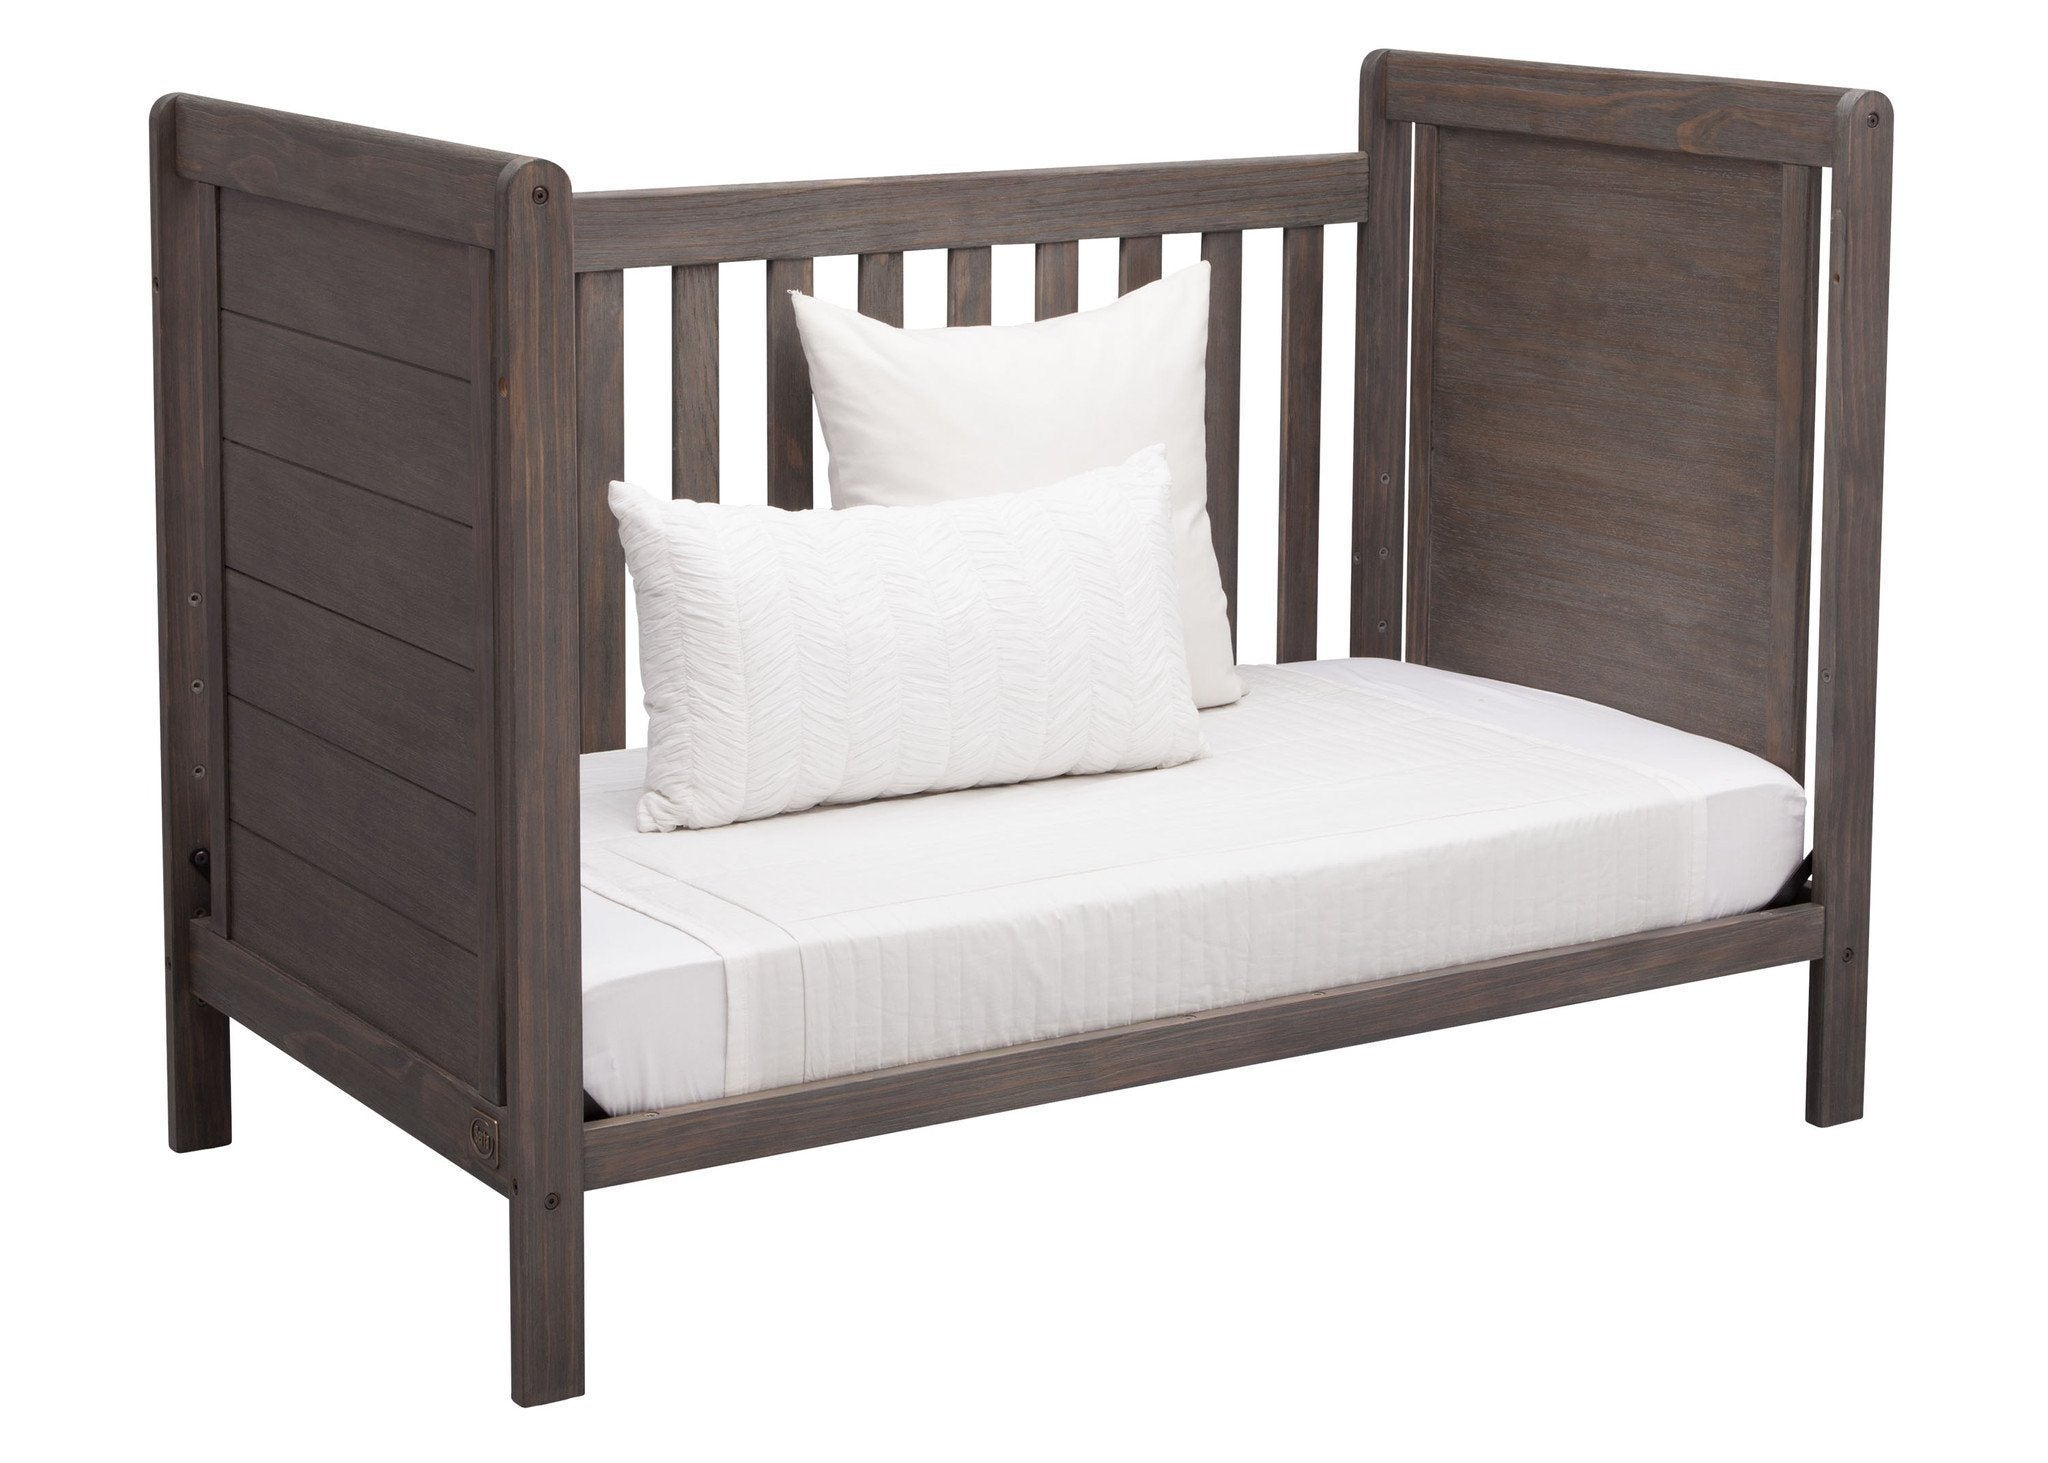 Delta Children Rustic Grey (084) Cali 4-in-1 Crib, angled Conversion to daybed, a5a